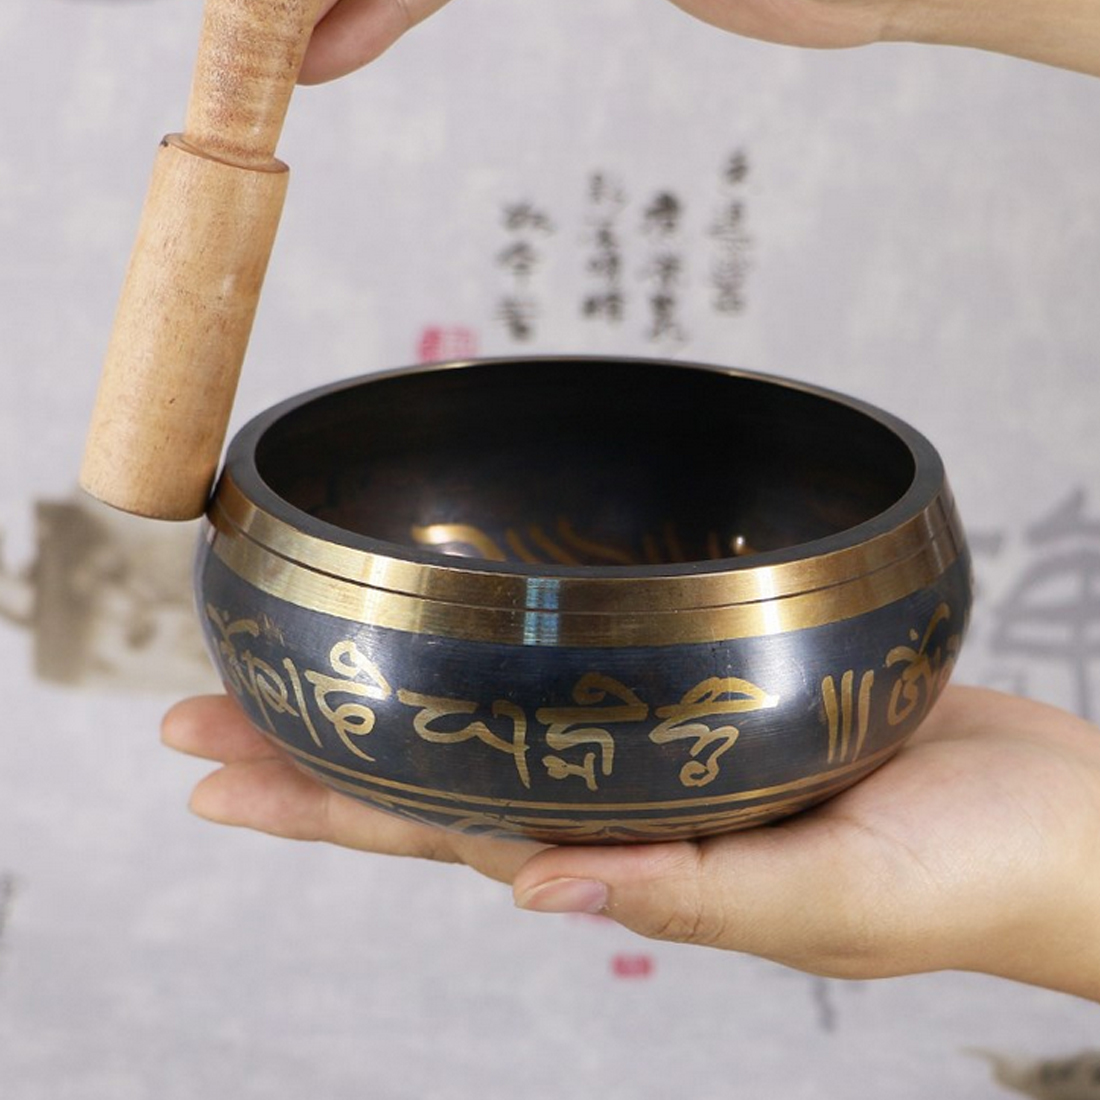 Tibetan Bowl Singing Bowl Decorative-wall-dishes Home Decoration Crafts Decorative Wall Dishes Tibetan Singing Bowl